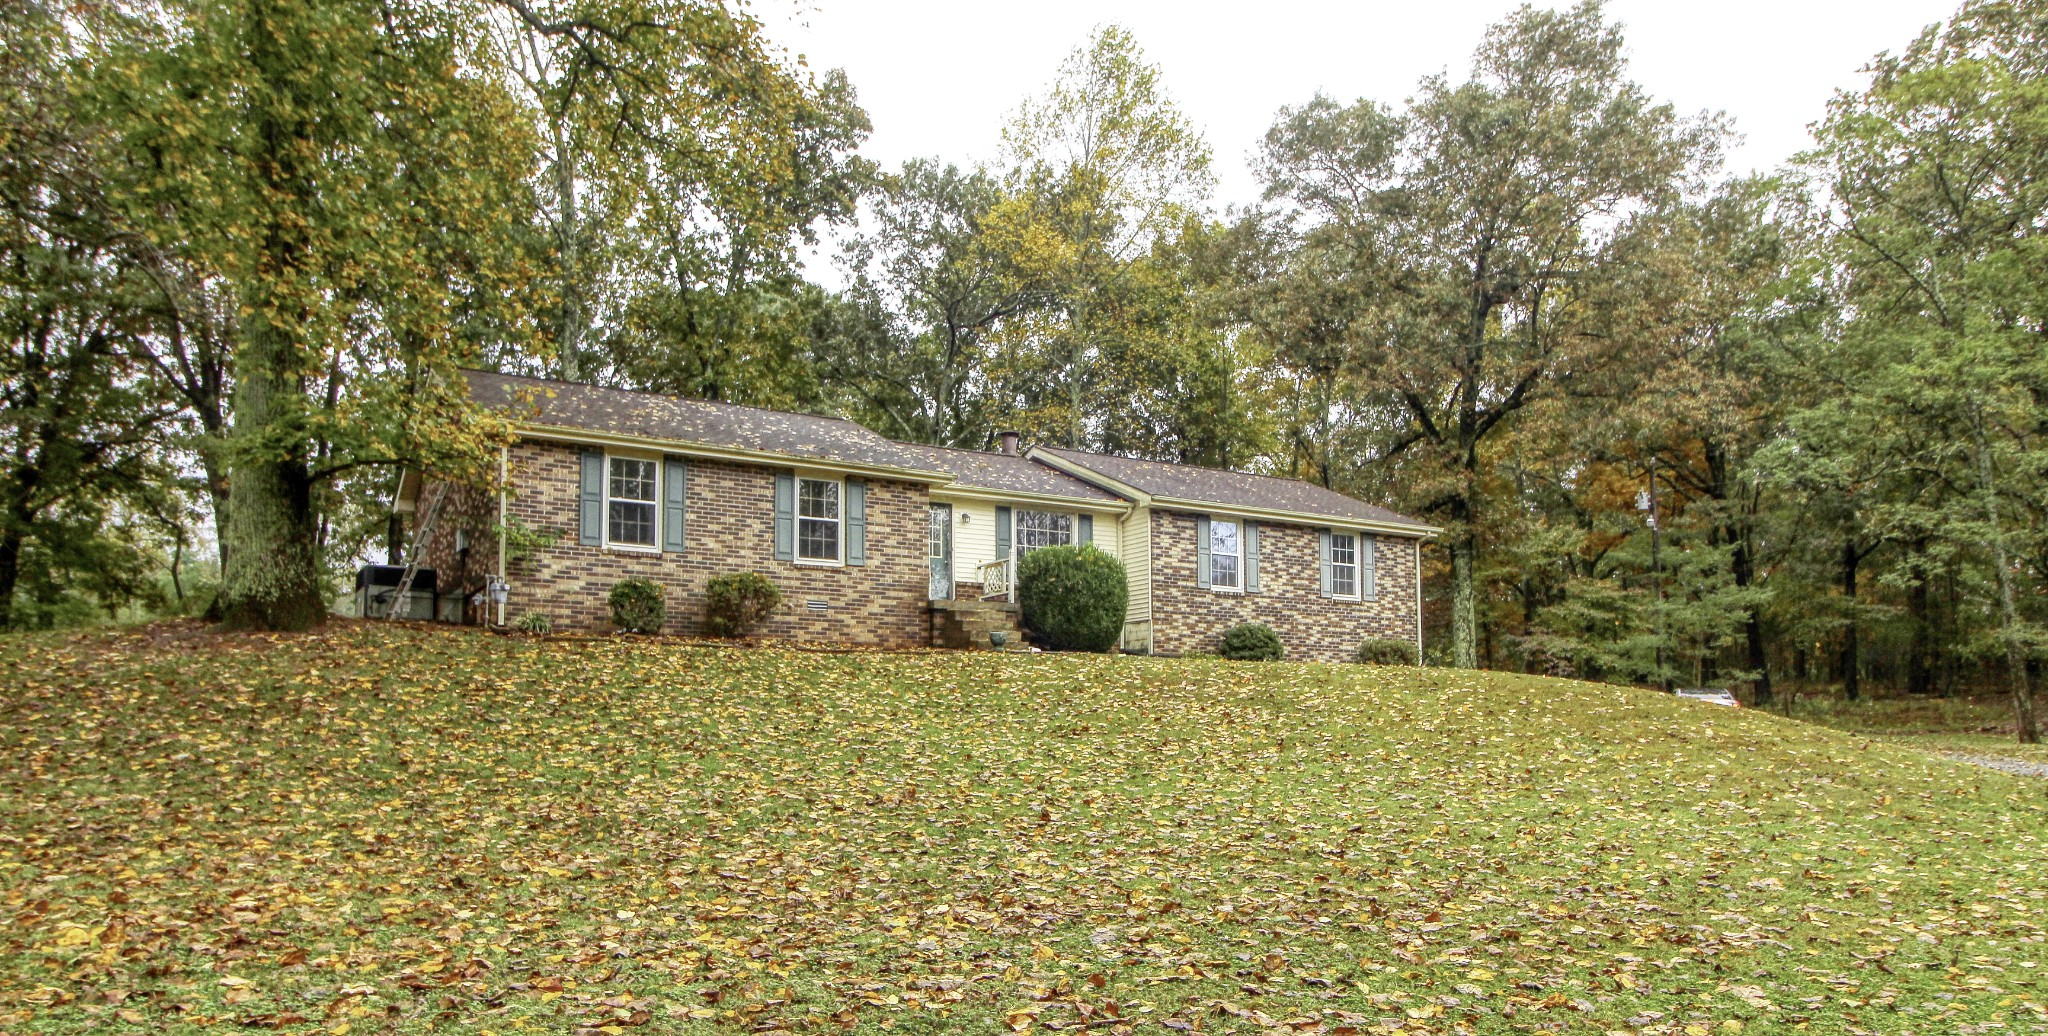 268 Raymond Hodges Rd, Cottontown, TN 37048 - Cottontown, TN real estate listing